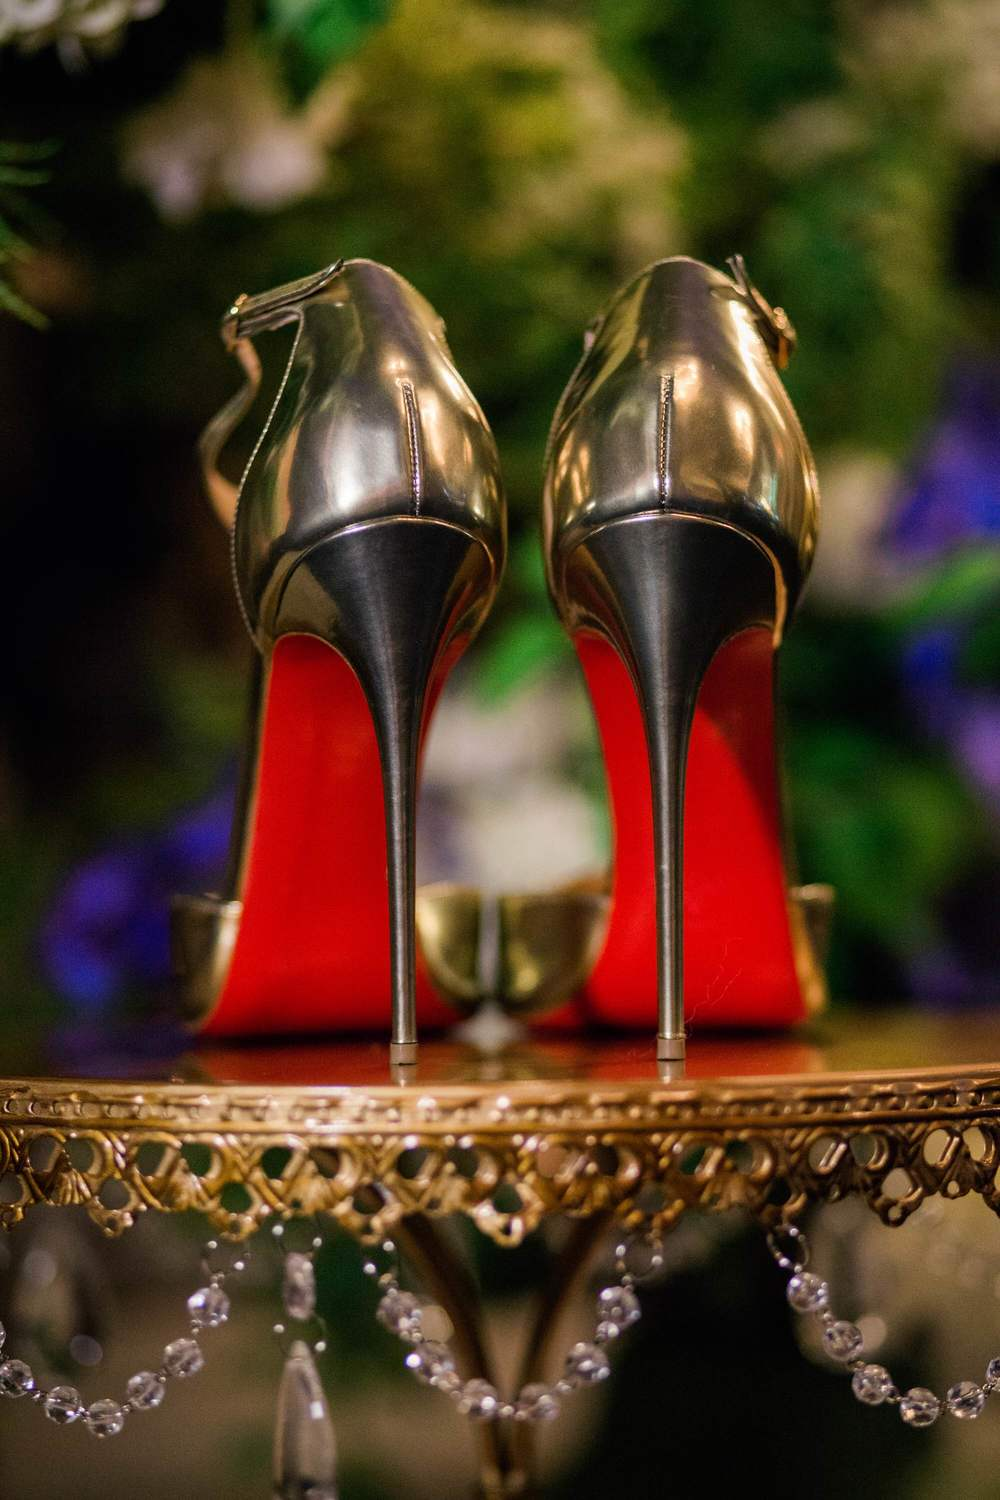 Louboutin heels on gold chandelier cake stand by Opulent Treasures